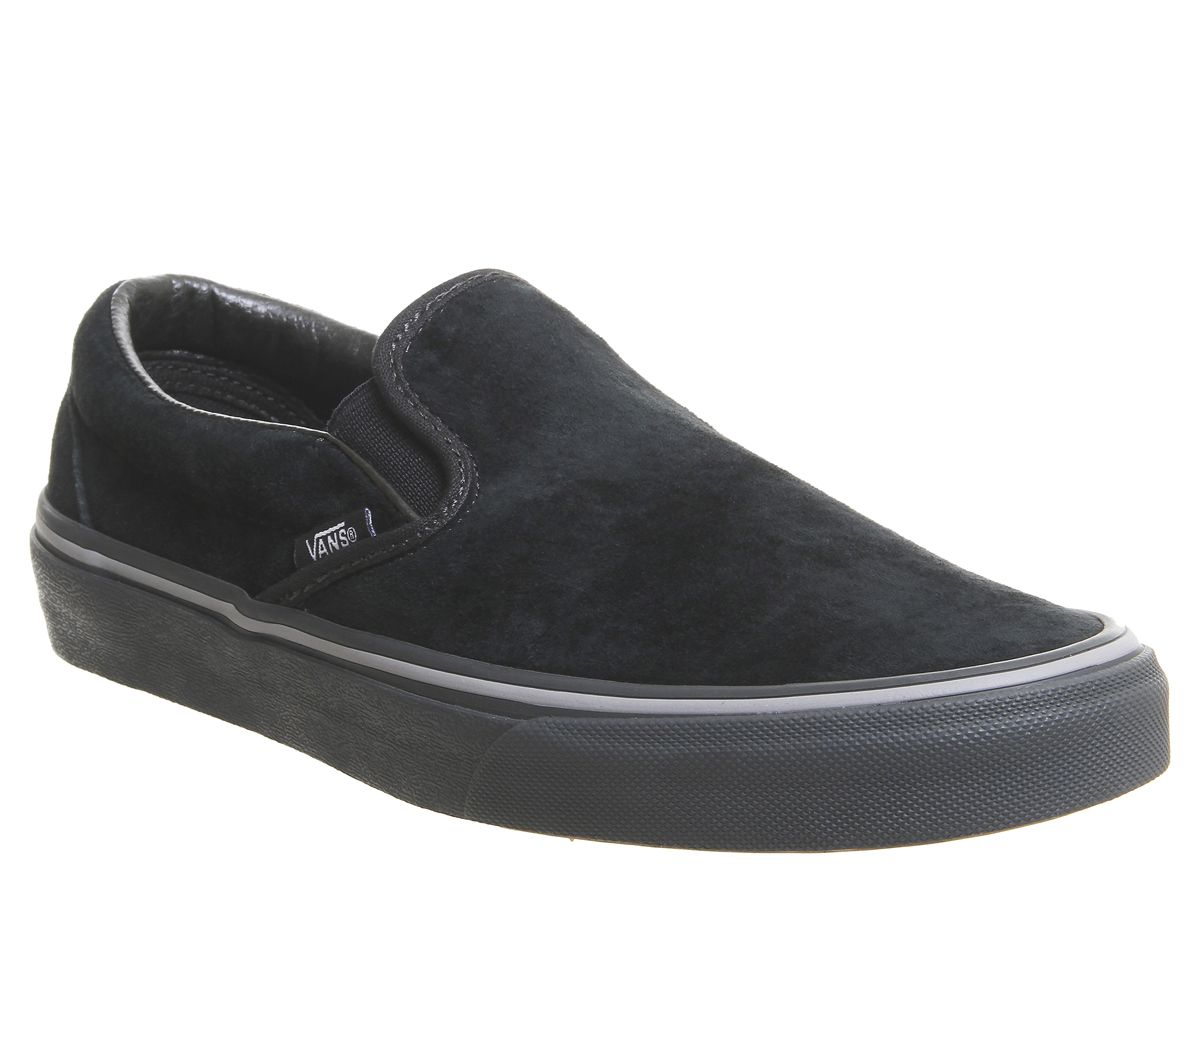 4418a67f60e86c Vans Vans Classic Slip On Trainers Pirate Black Frost Grey - Unisex ...